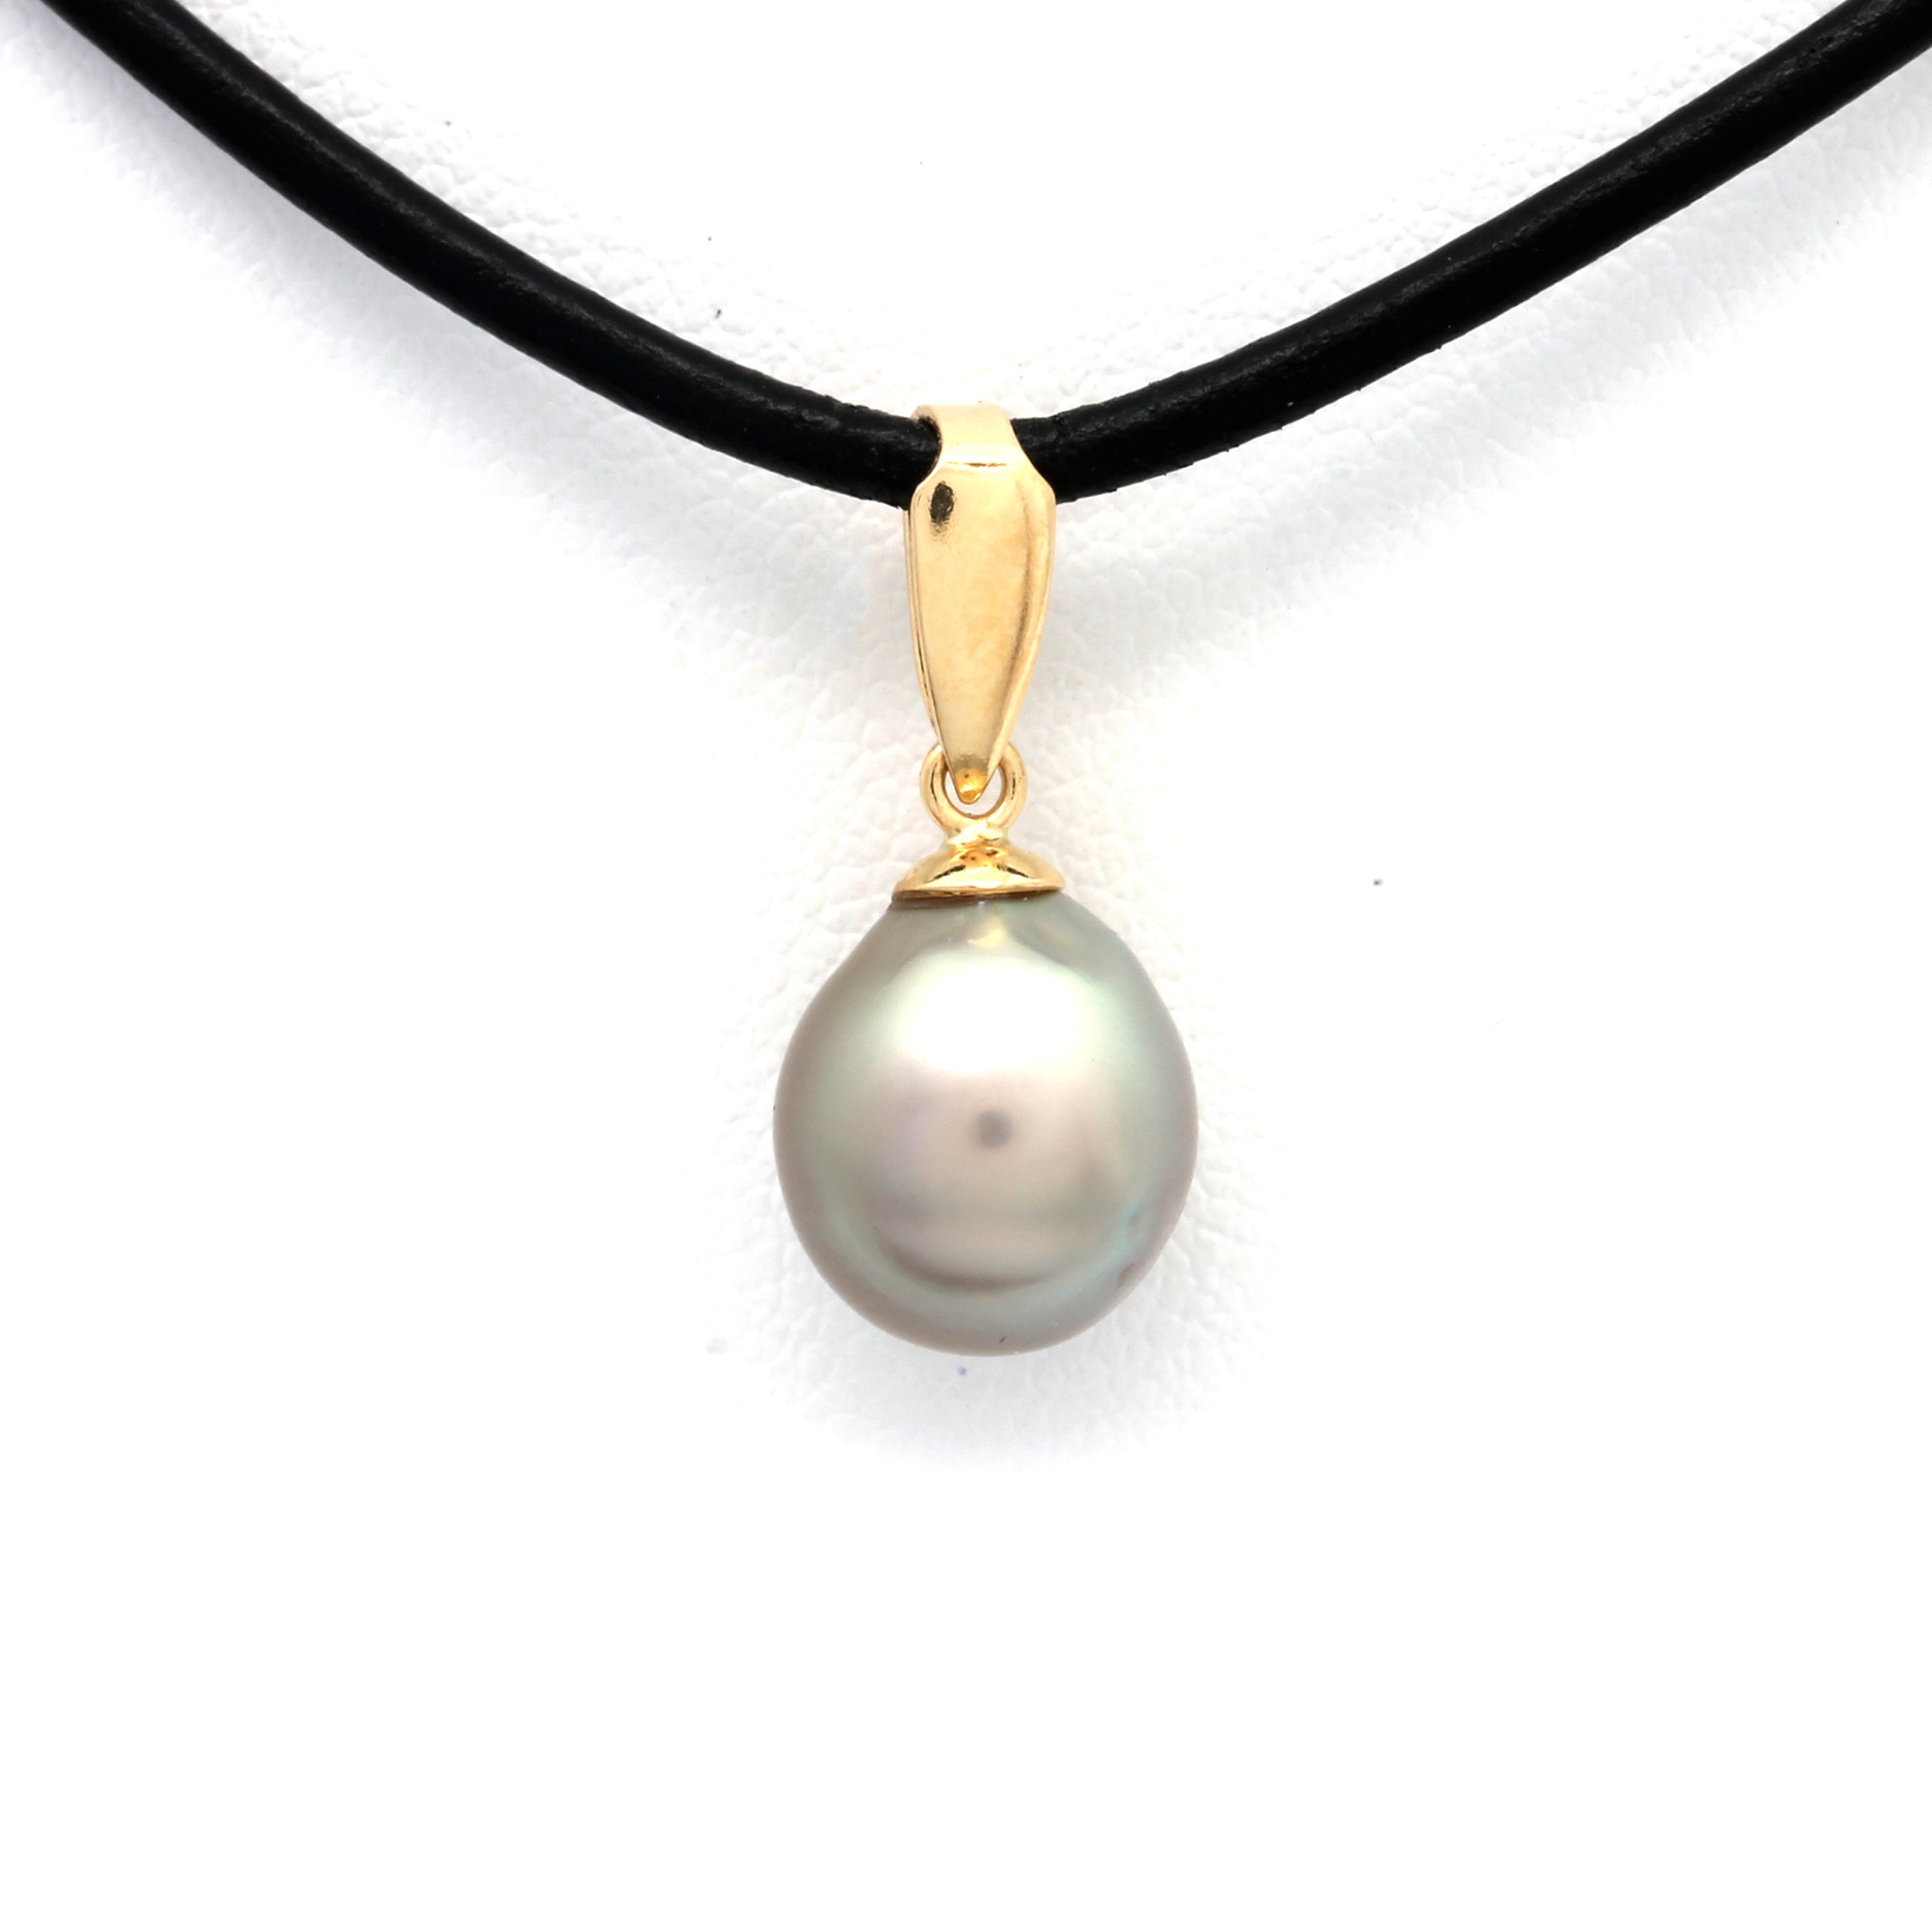 Classic 18K Yellow Gold Pendant with Cortez Pearl